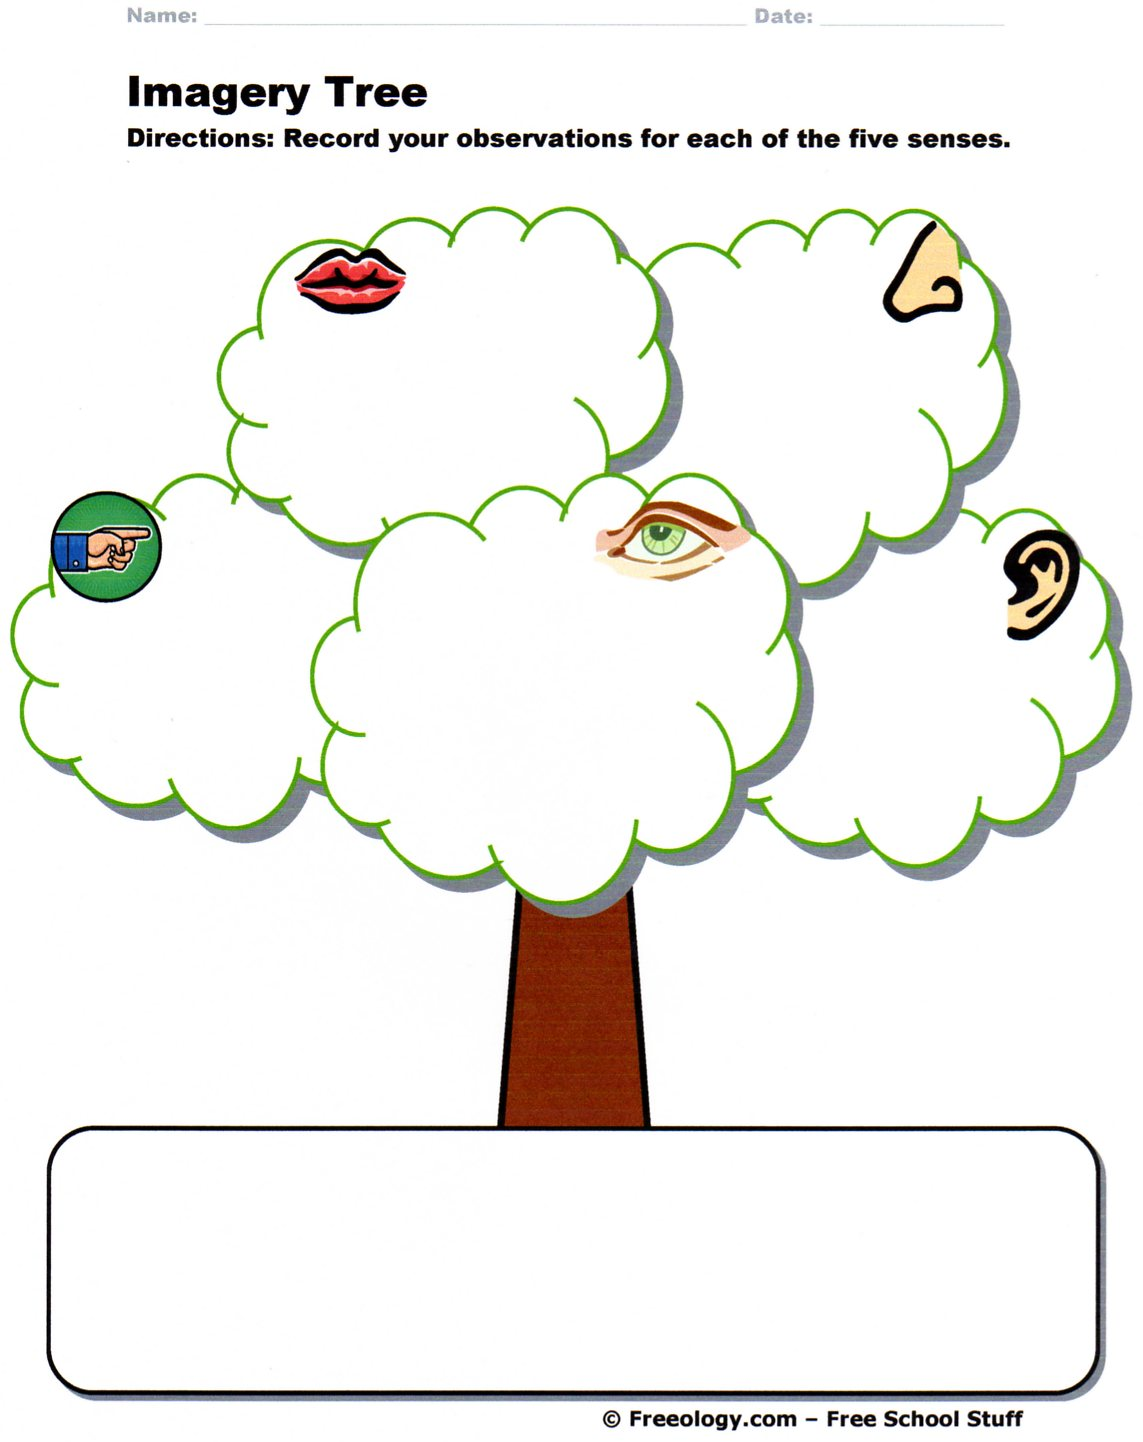 blank tree diagram graphic organizer haltech e11 wiring student page for my project